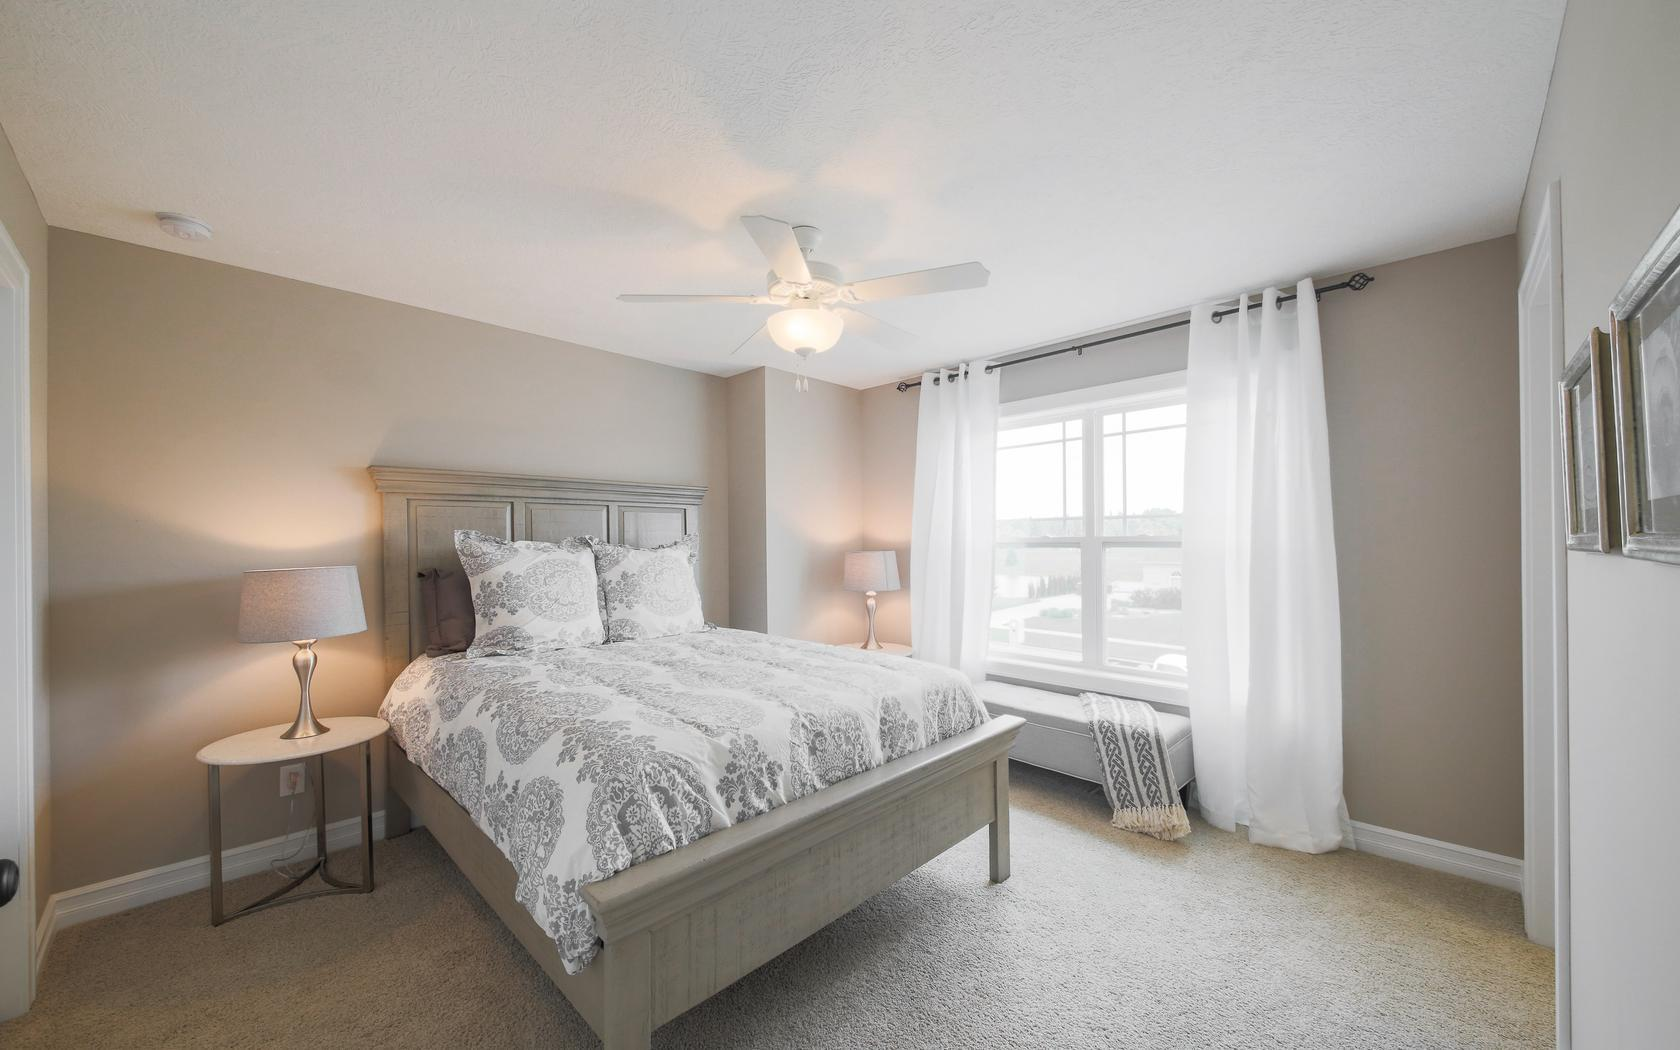 Bedroom featured in the Windsor By Mayberry Homes in Lansing, MI